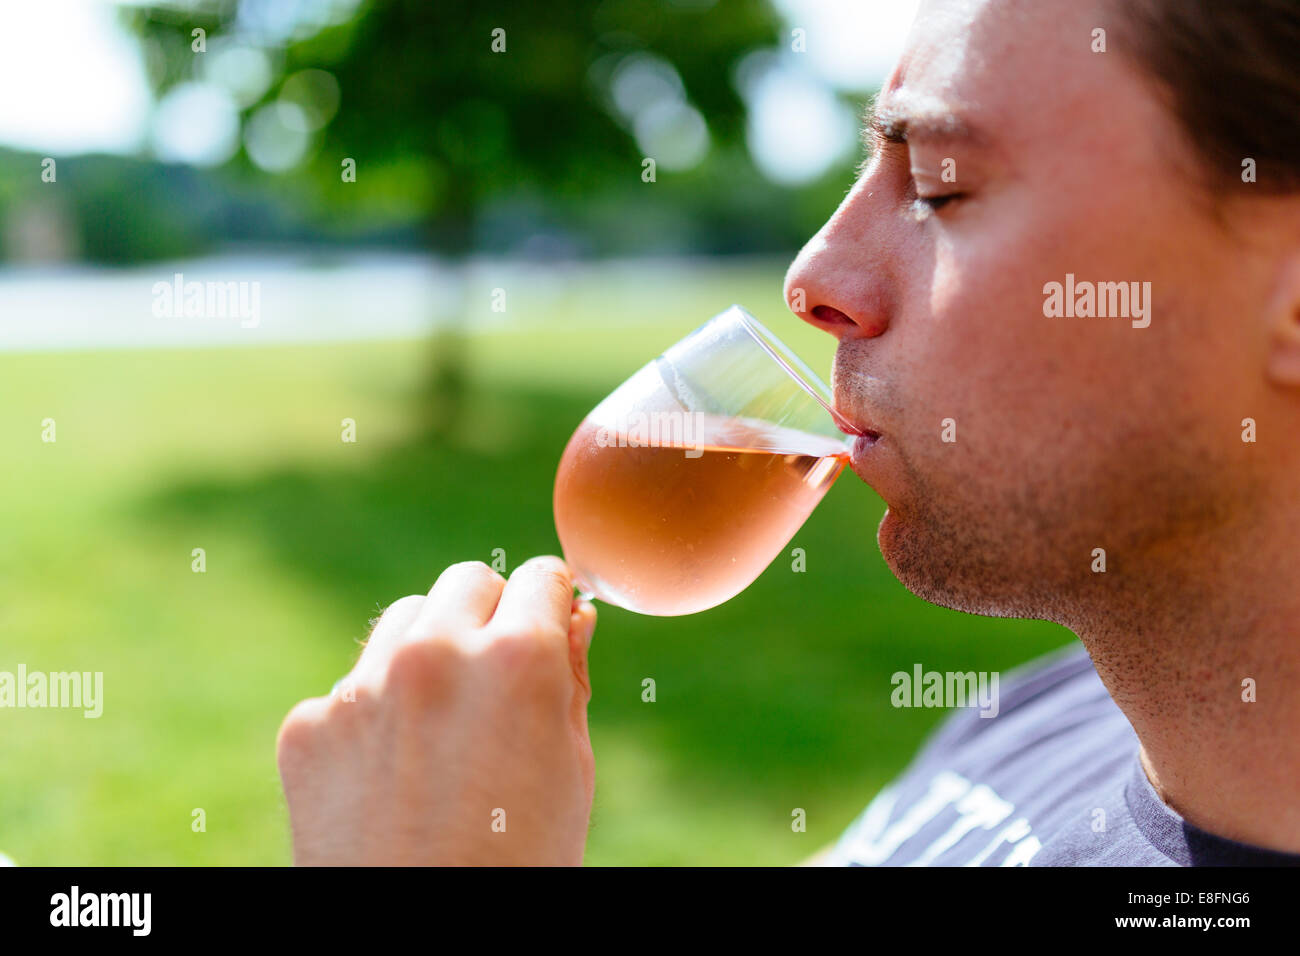 Man drinking glass of chilled summer wine - Stock Image